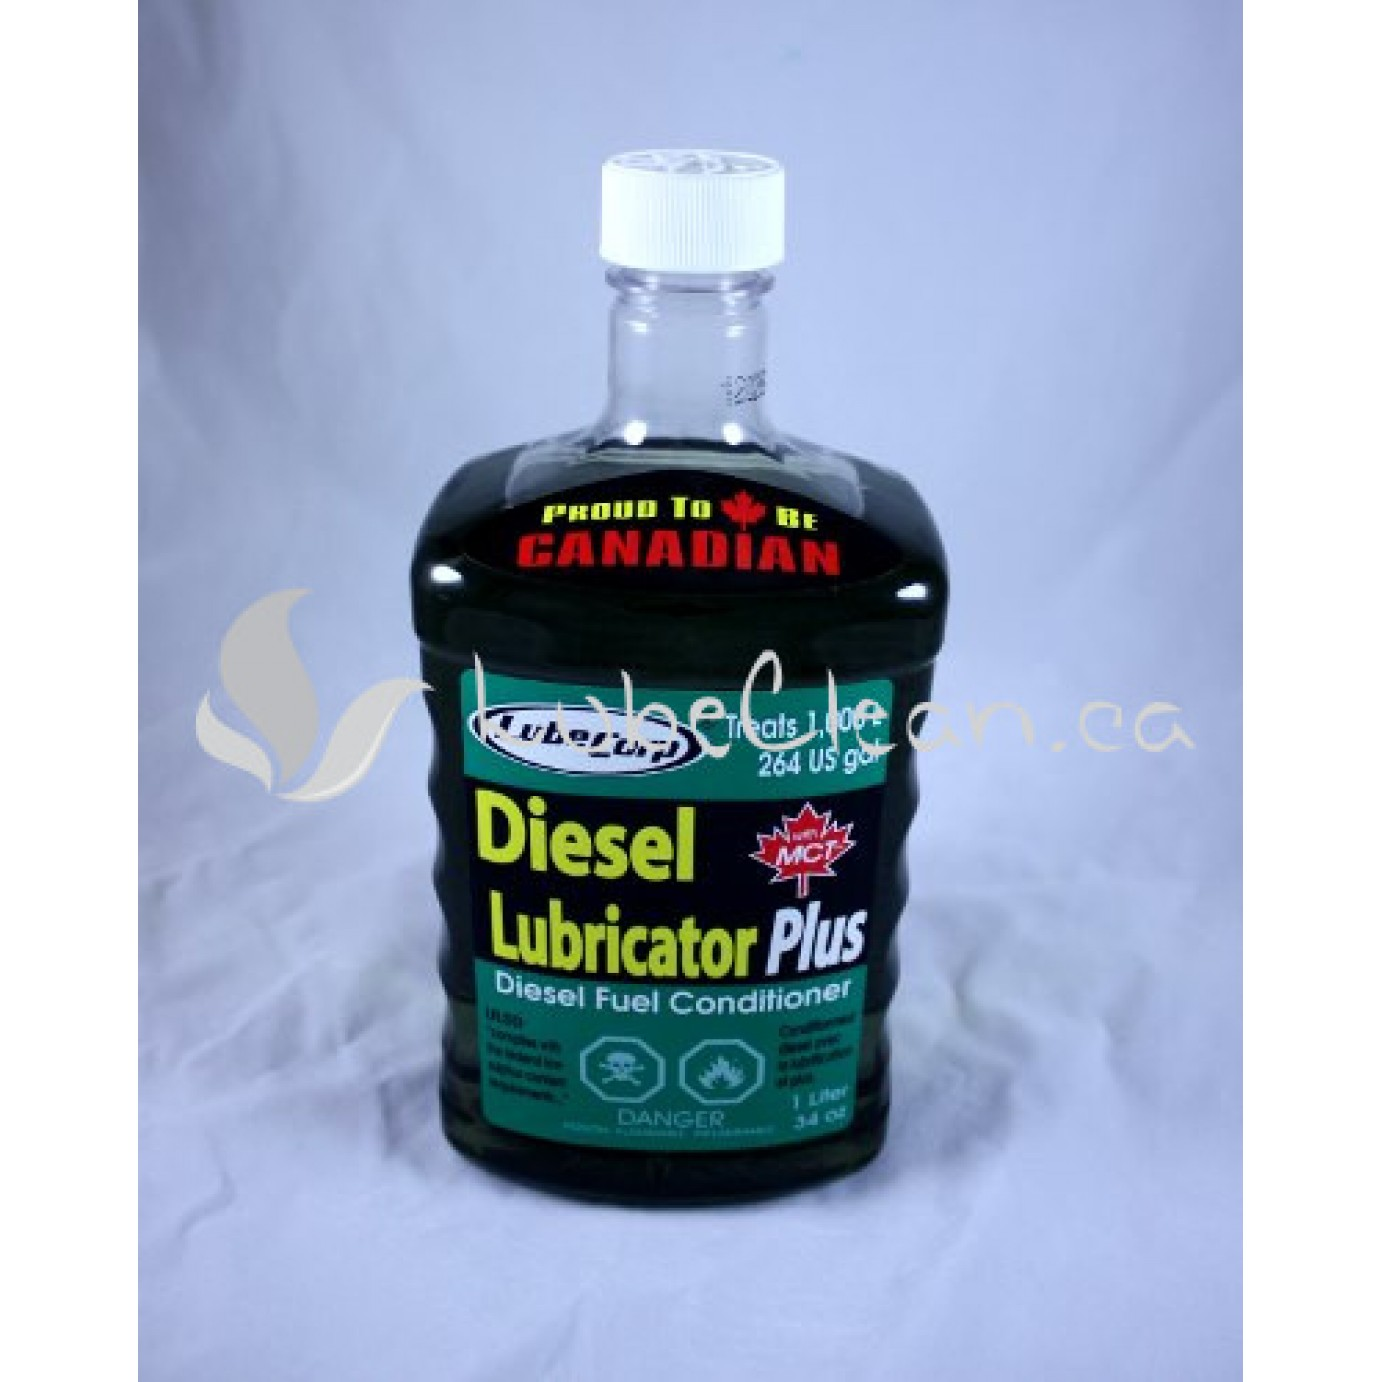 Diesel Lubricator Plus Diesel Conditioner 1 L bottle